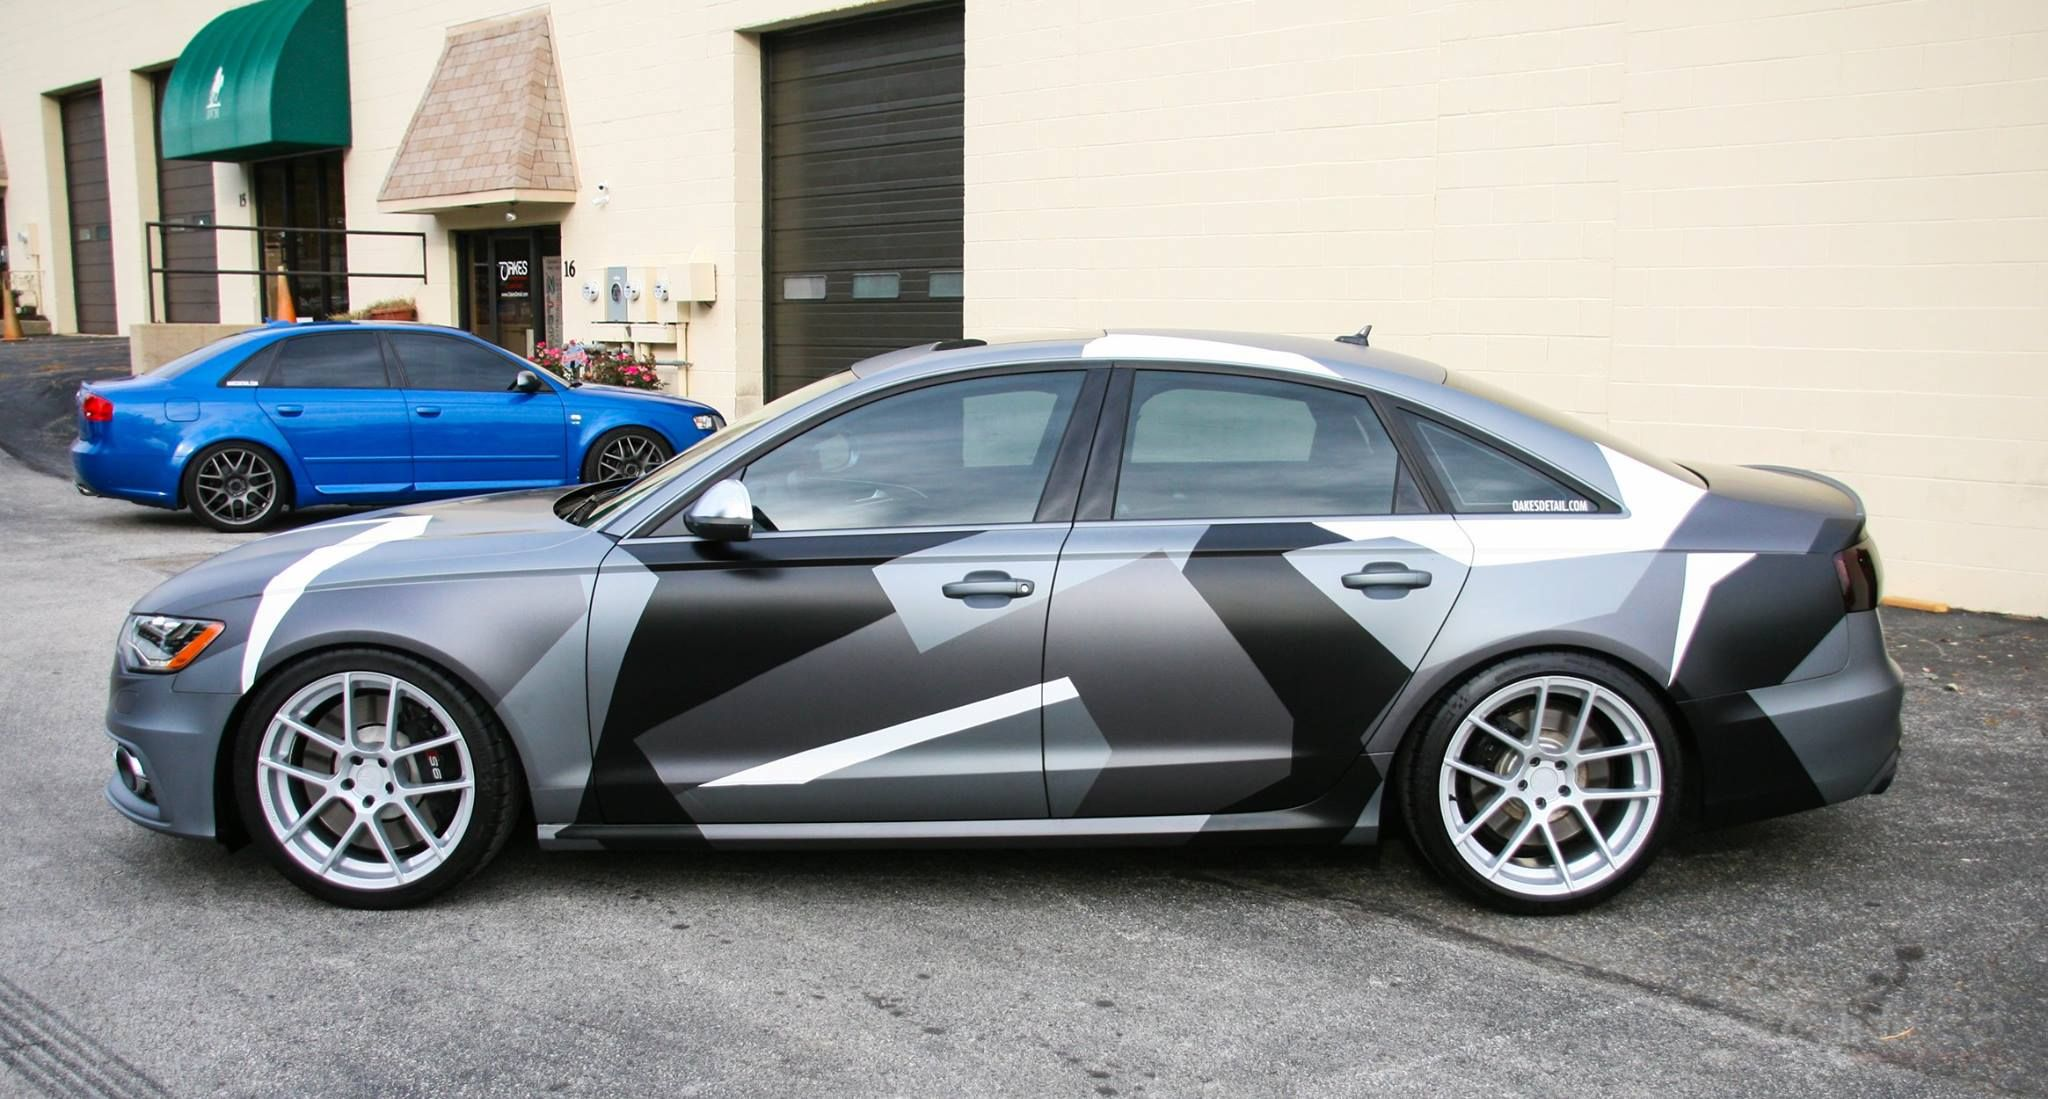 Oakesdetail Com Services Vinyl Wrap 2013 Audi S6 In Metallic Black Wrapped In Matte Gray And Custom Digital Snow Camo Wra Camo Wraps Vinyl Wrap Camo Truck